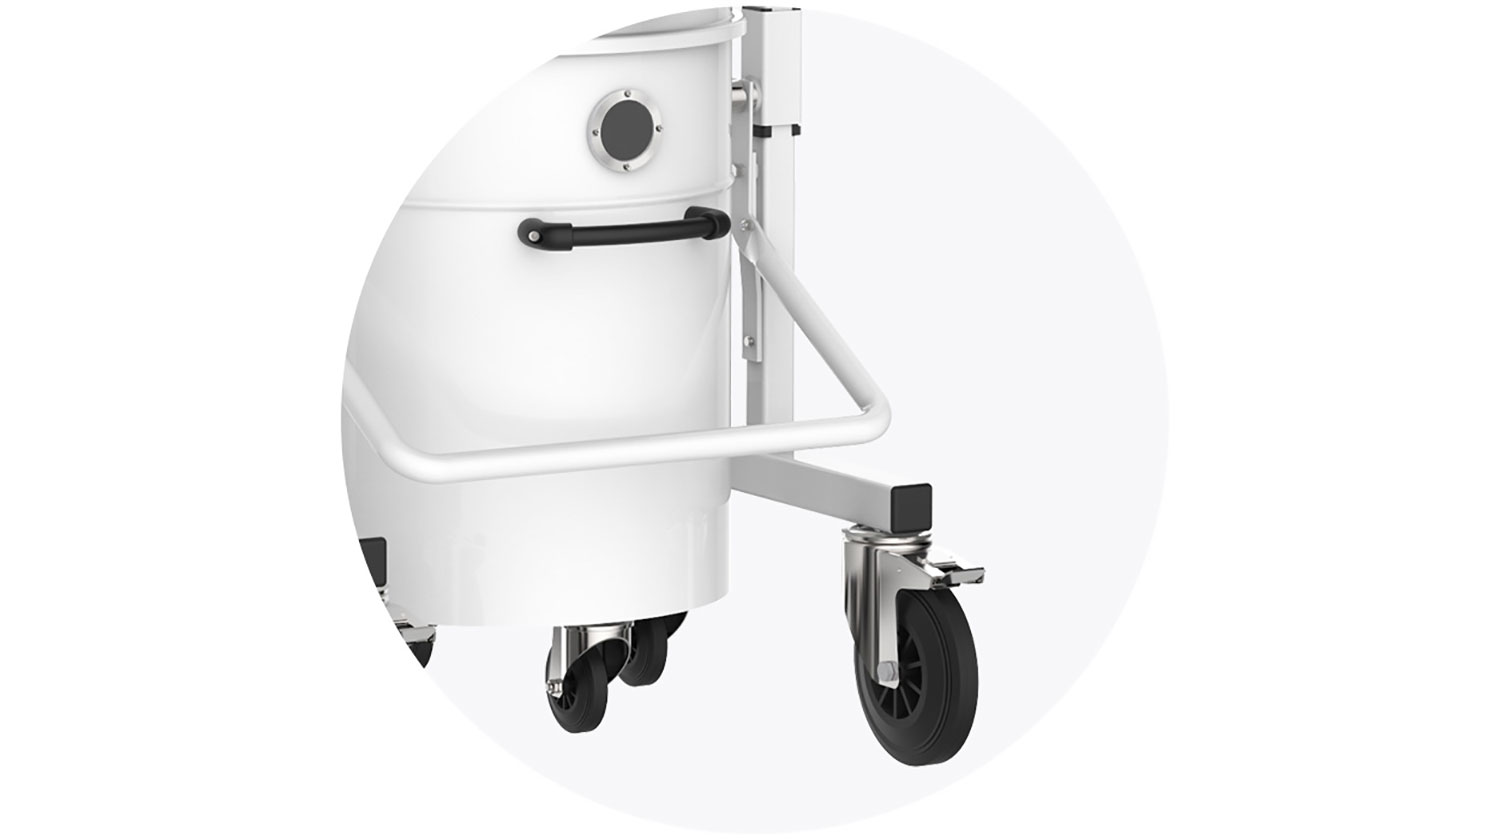 INT aluminum dust collector iVision iV2 release handle